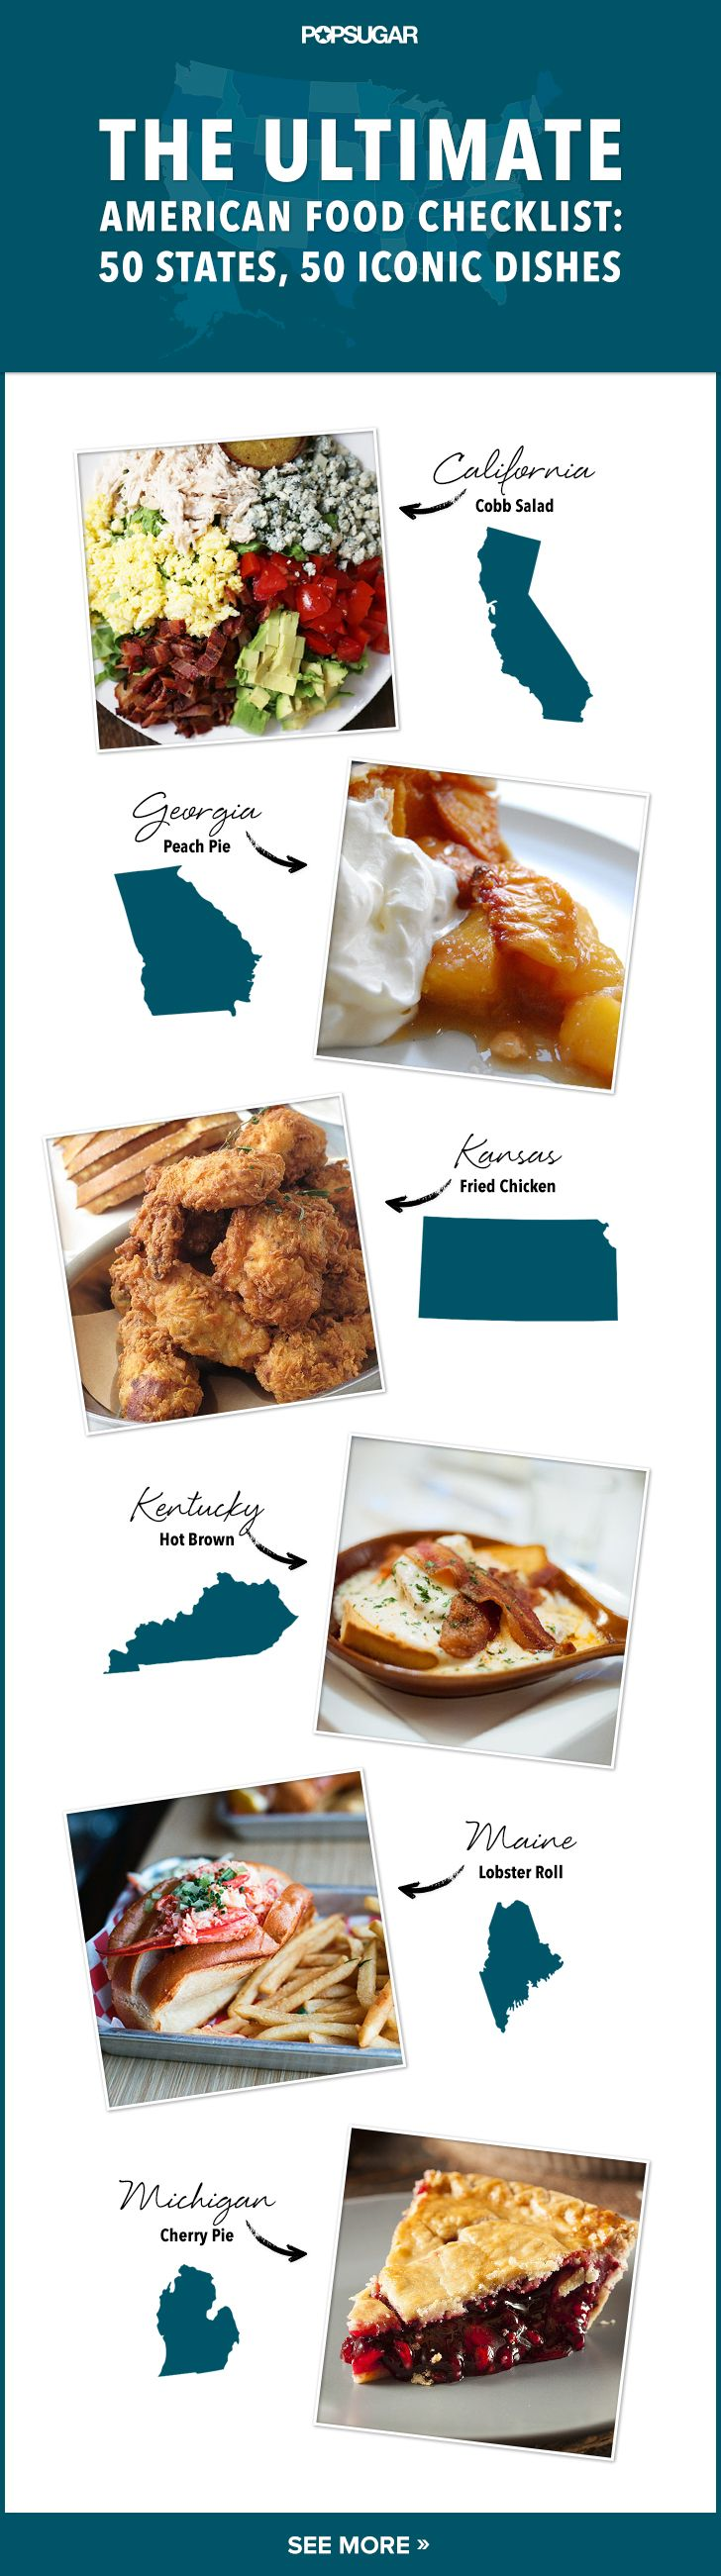 Check them all off: America's 50 iconic dishes from every state.